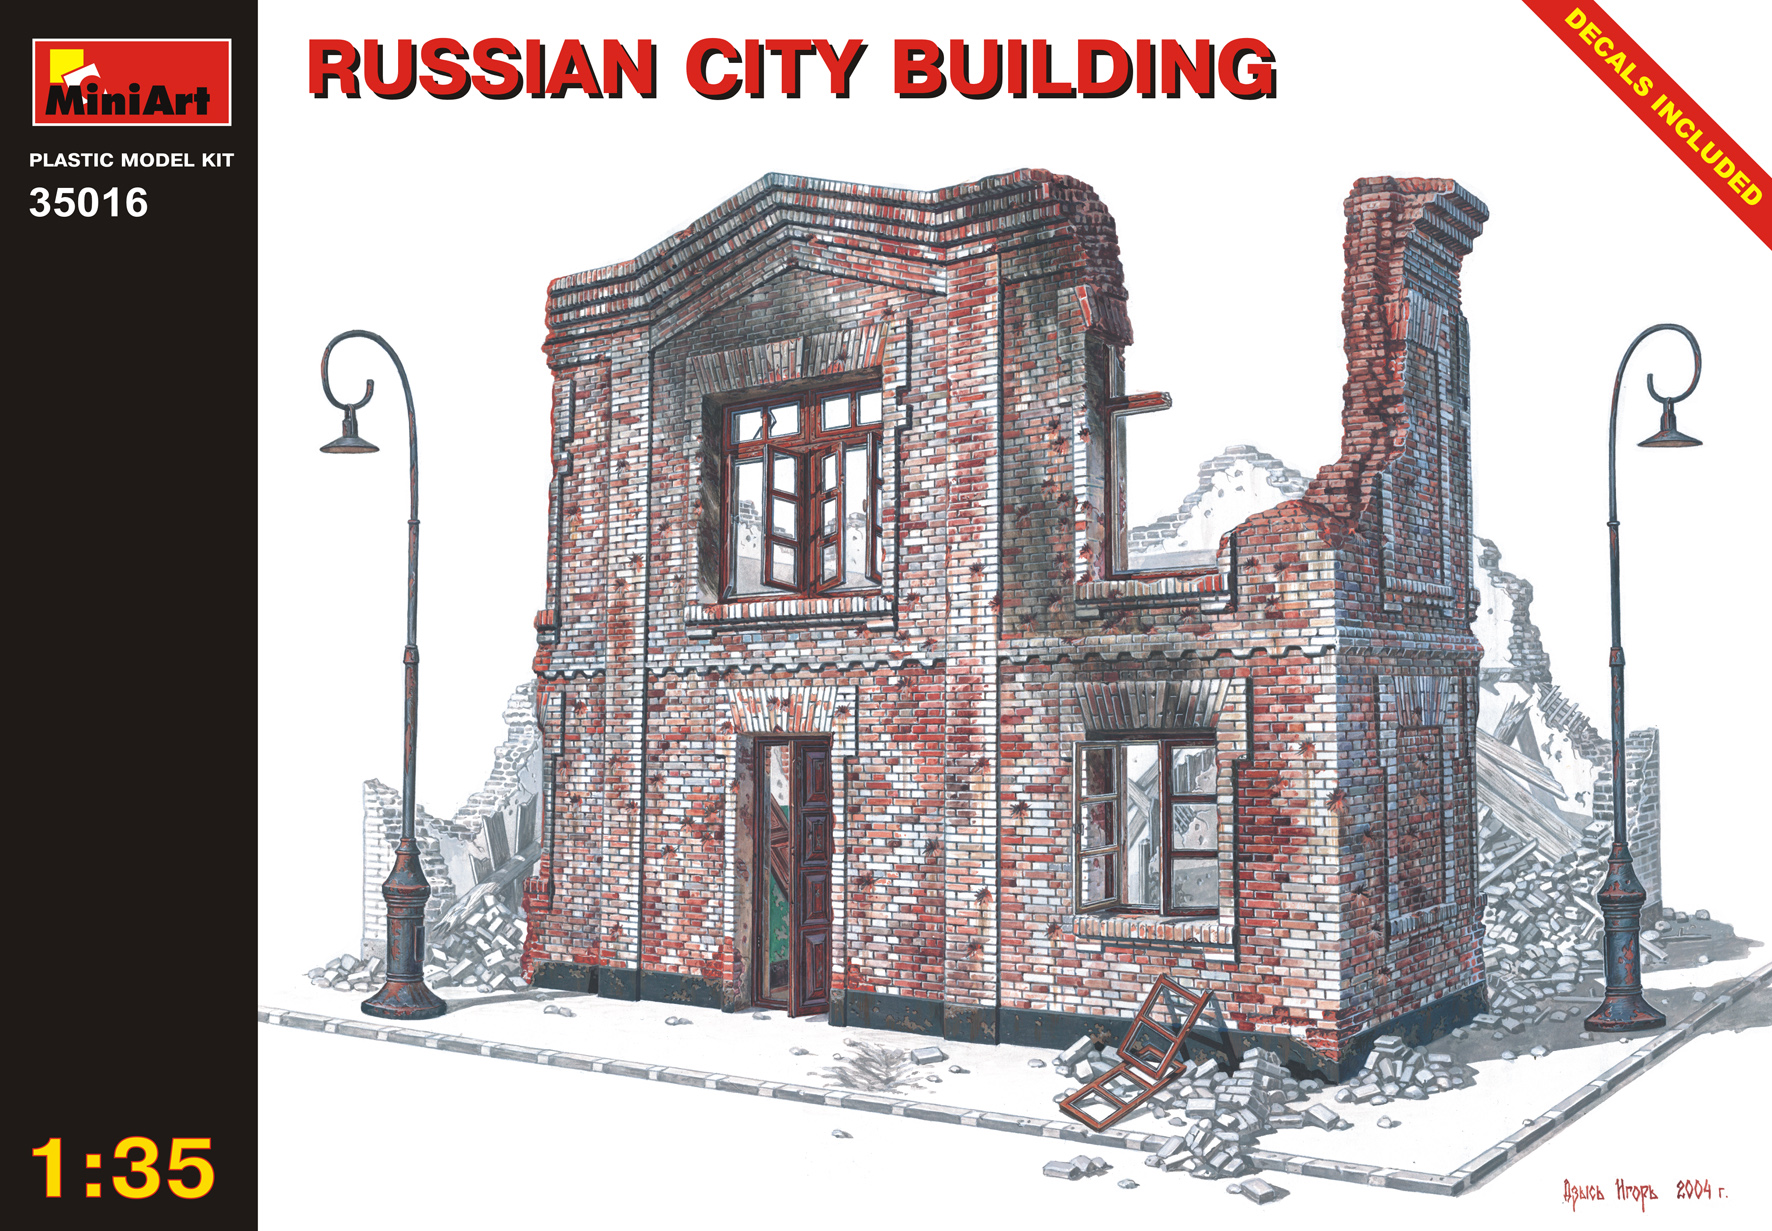 RUSSIAN CITY BUILDING